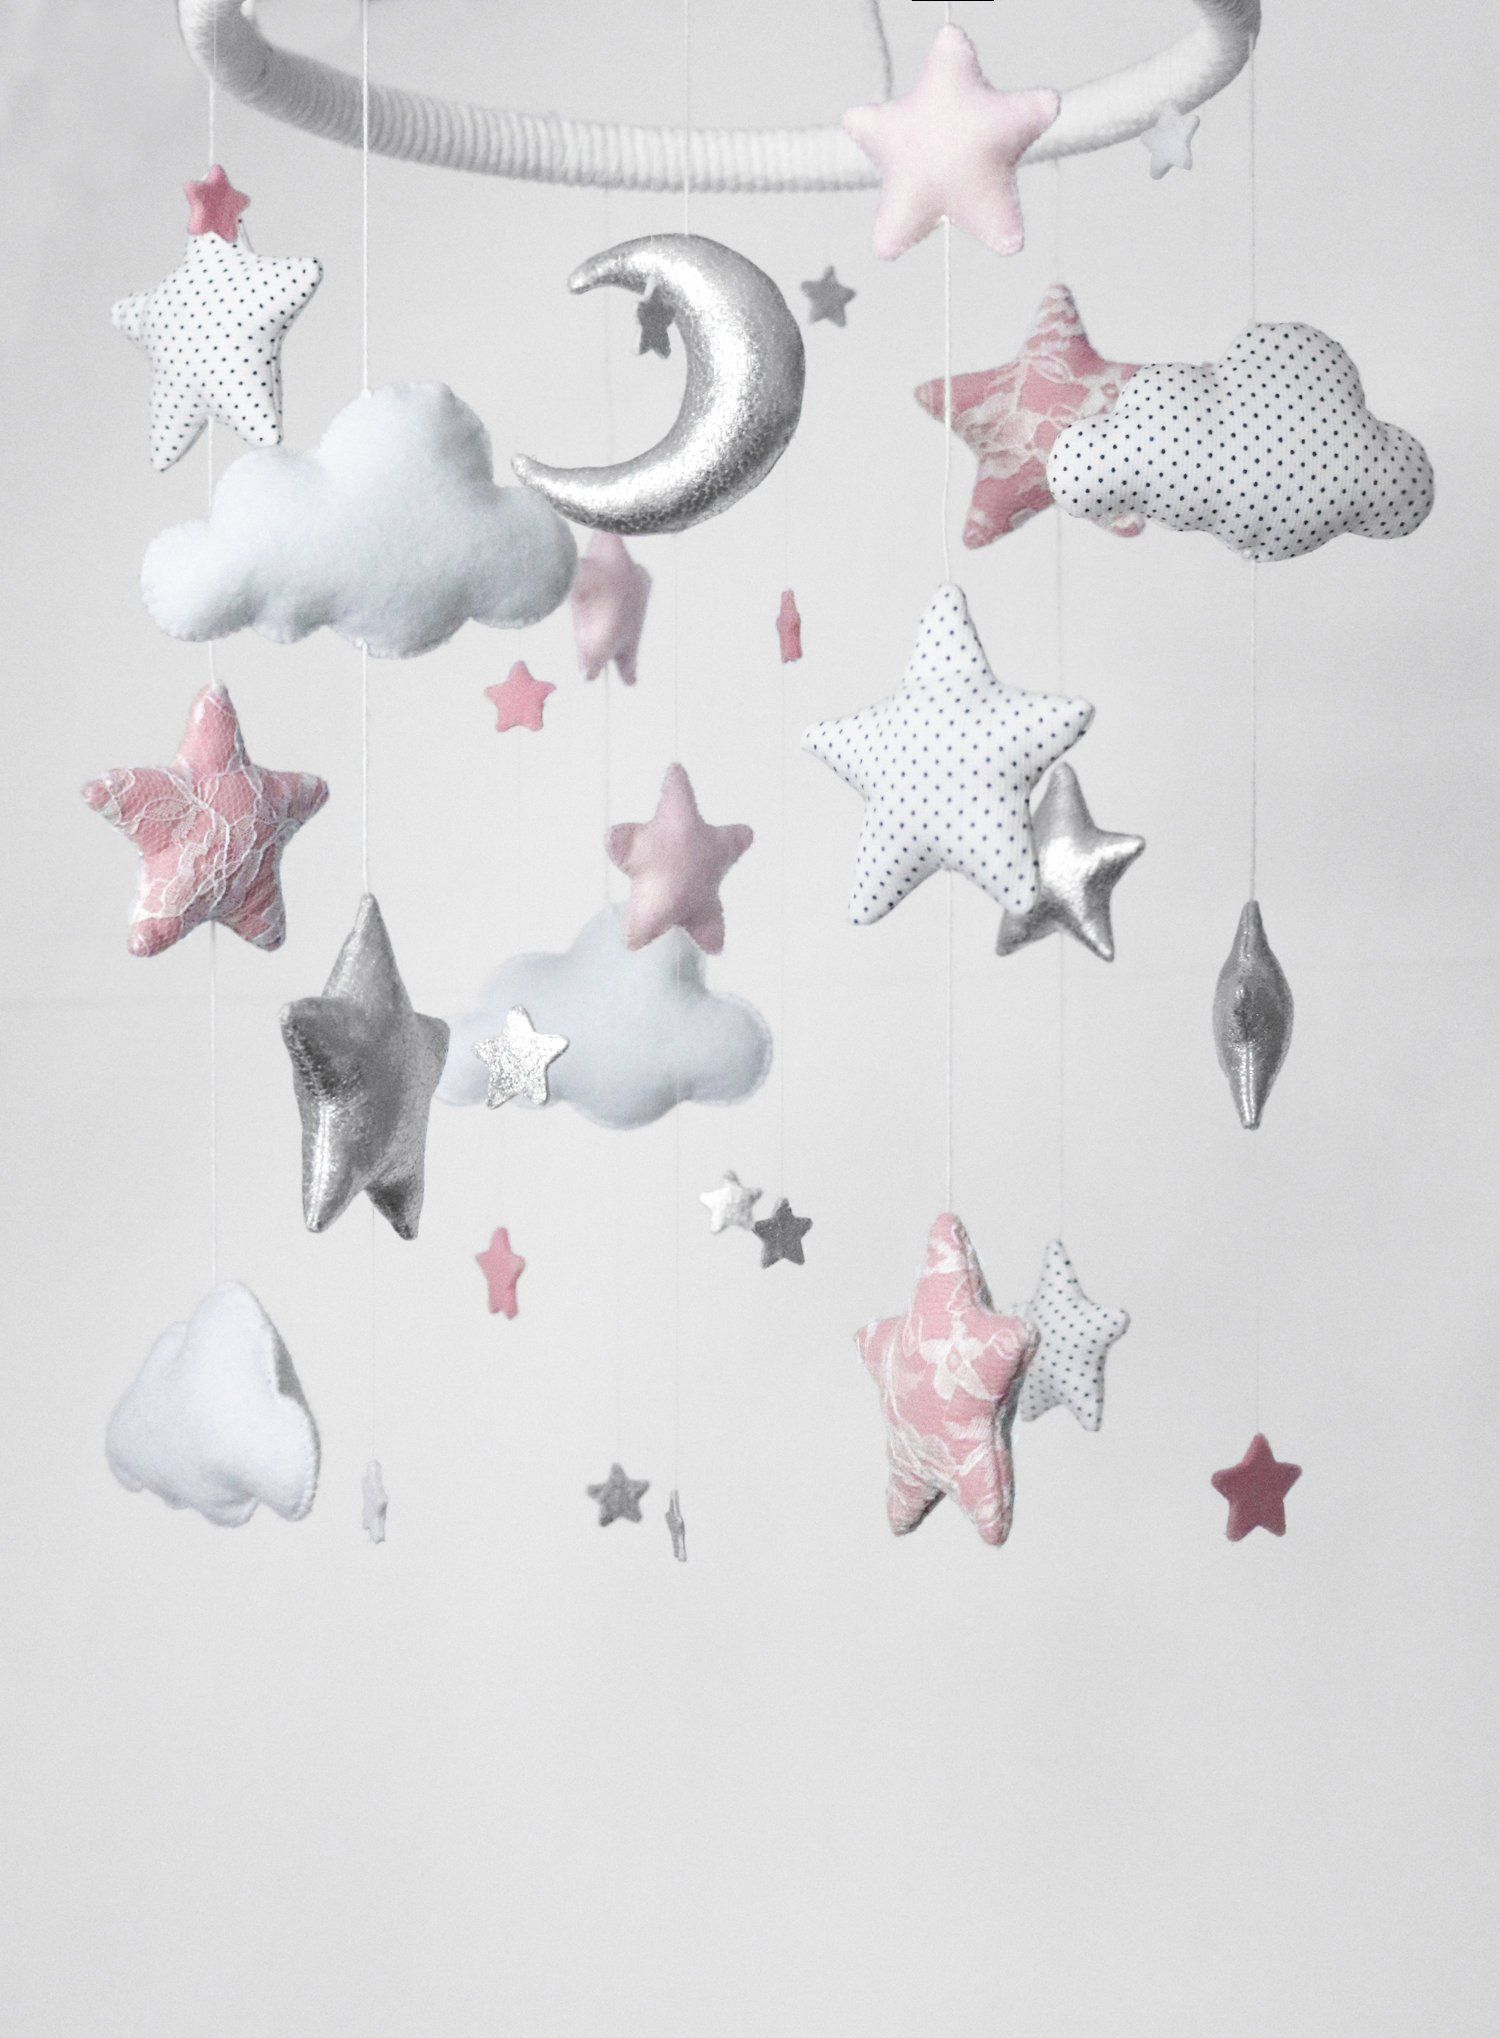 Baby Crib Star Cloud Mobile Decorations for Baby Bedroom Photography Decoration Warm Atmosphere Pink